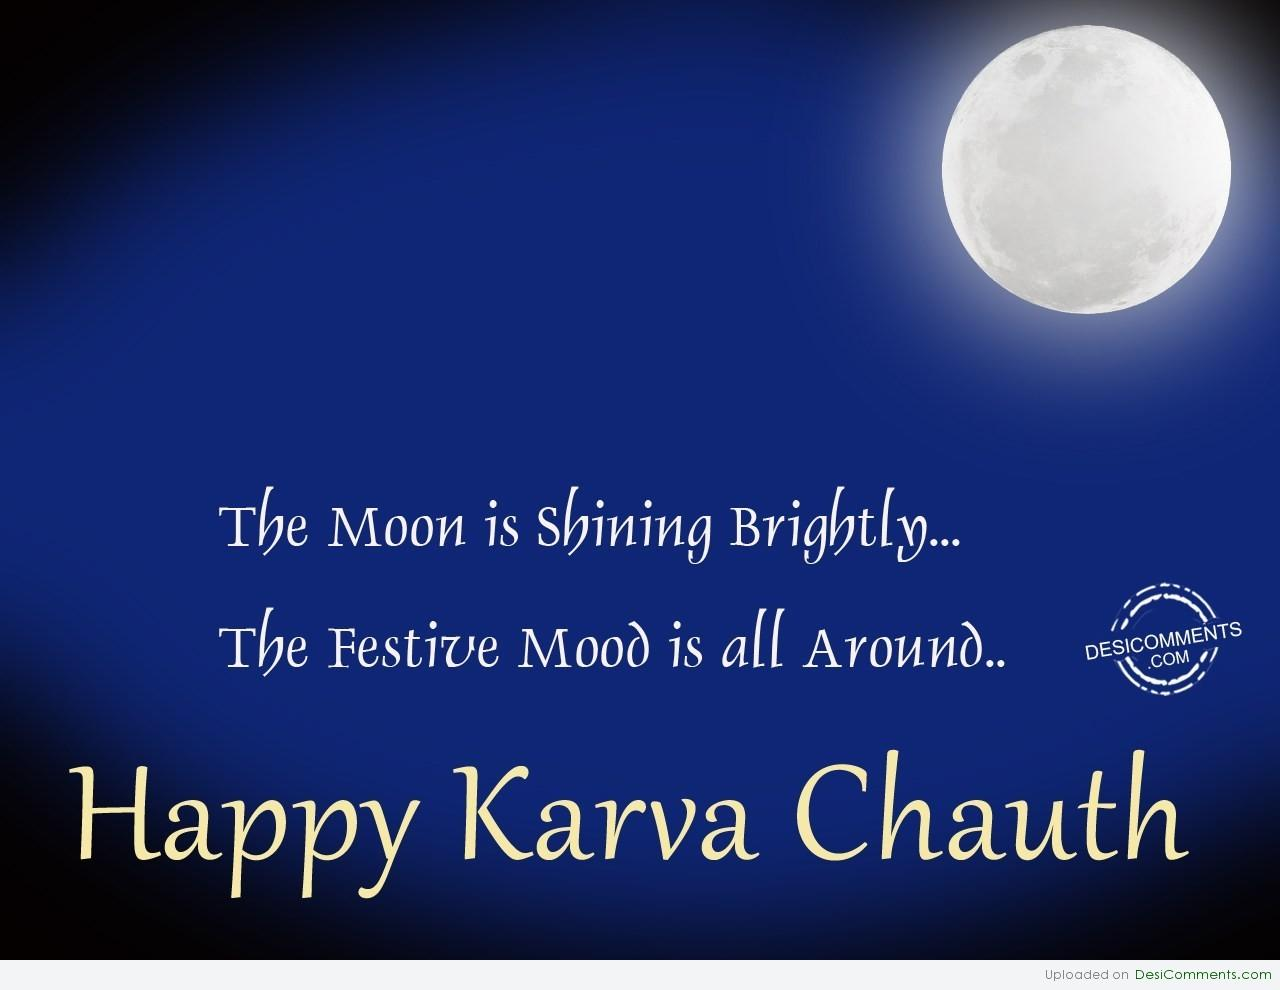 karva chauth pictures images graphics for facebook